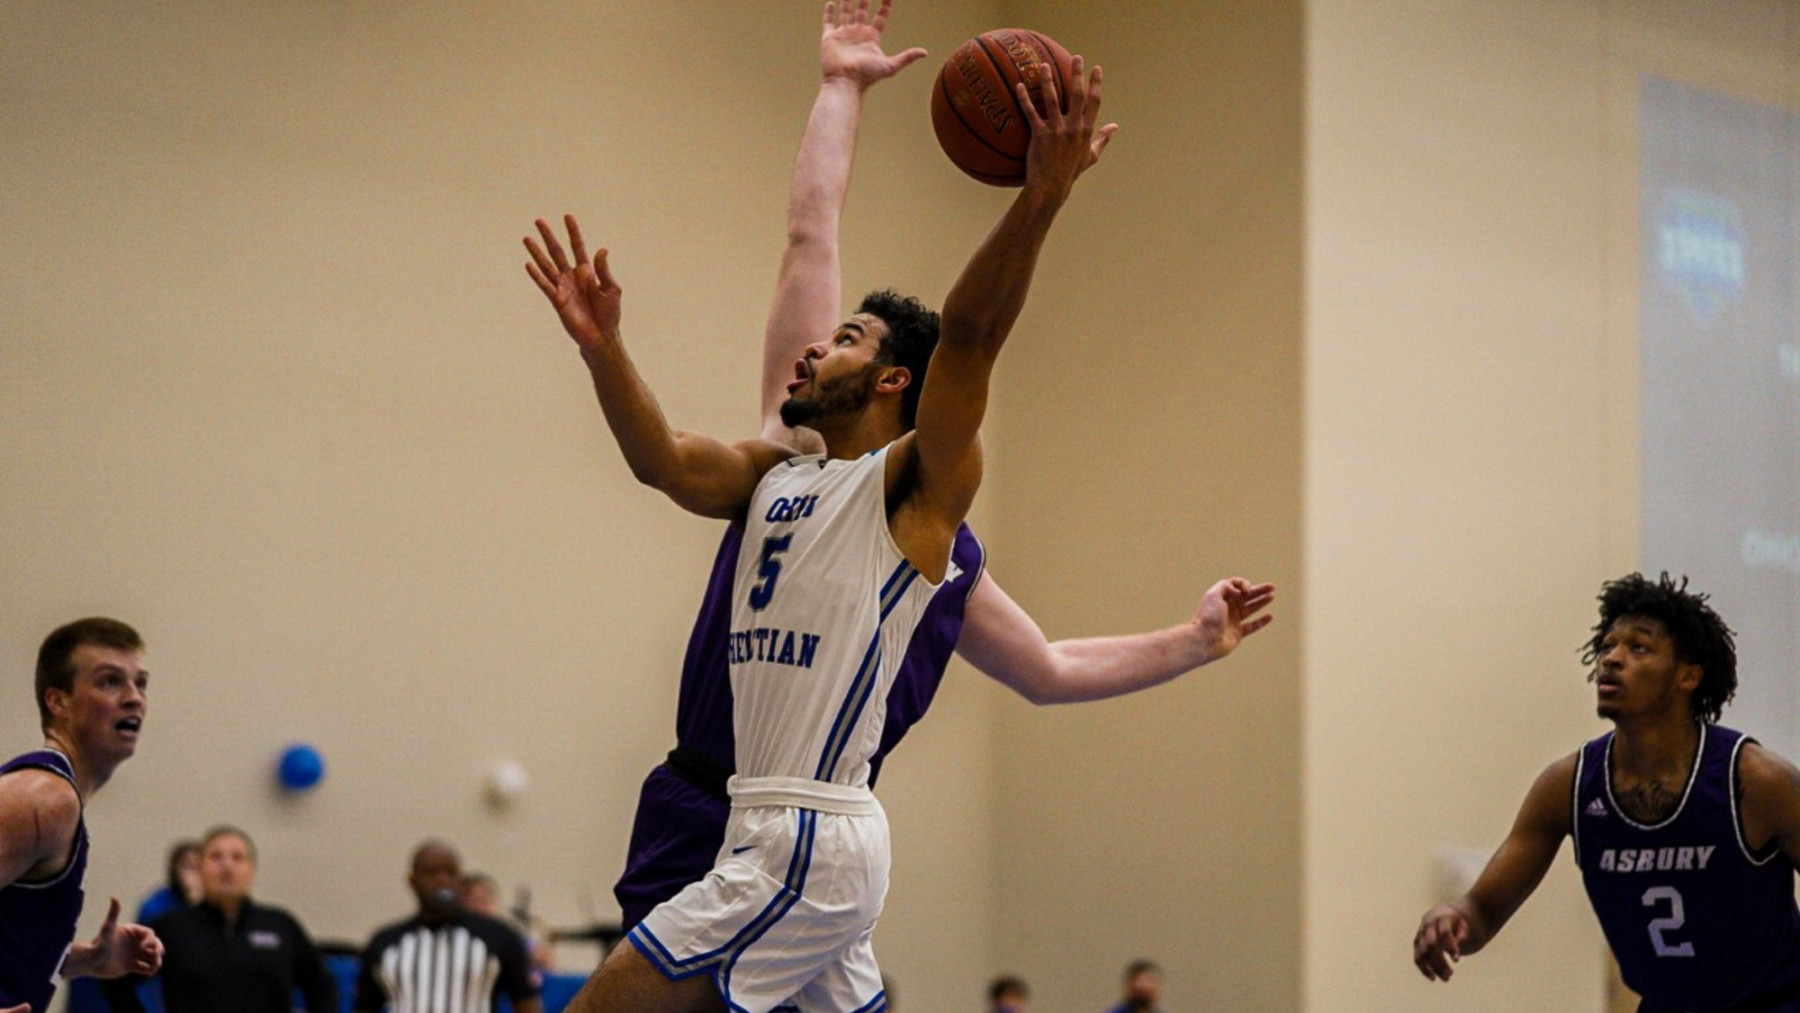 Trailblazers come up short in 1st round of RSC Tournament